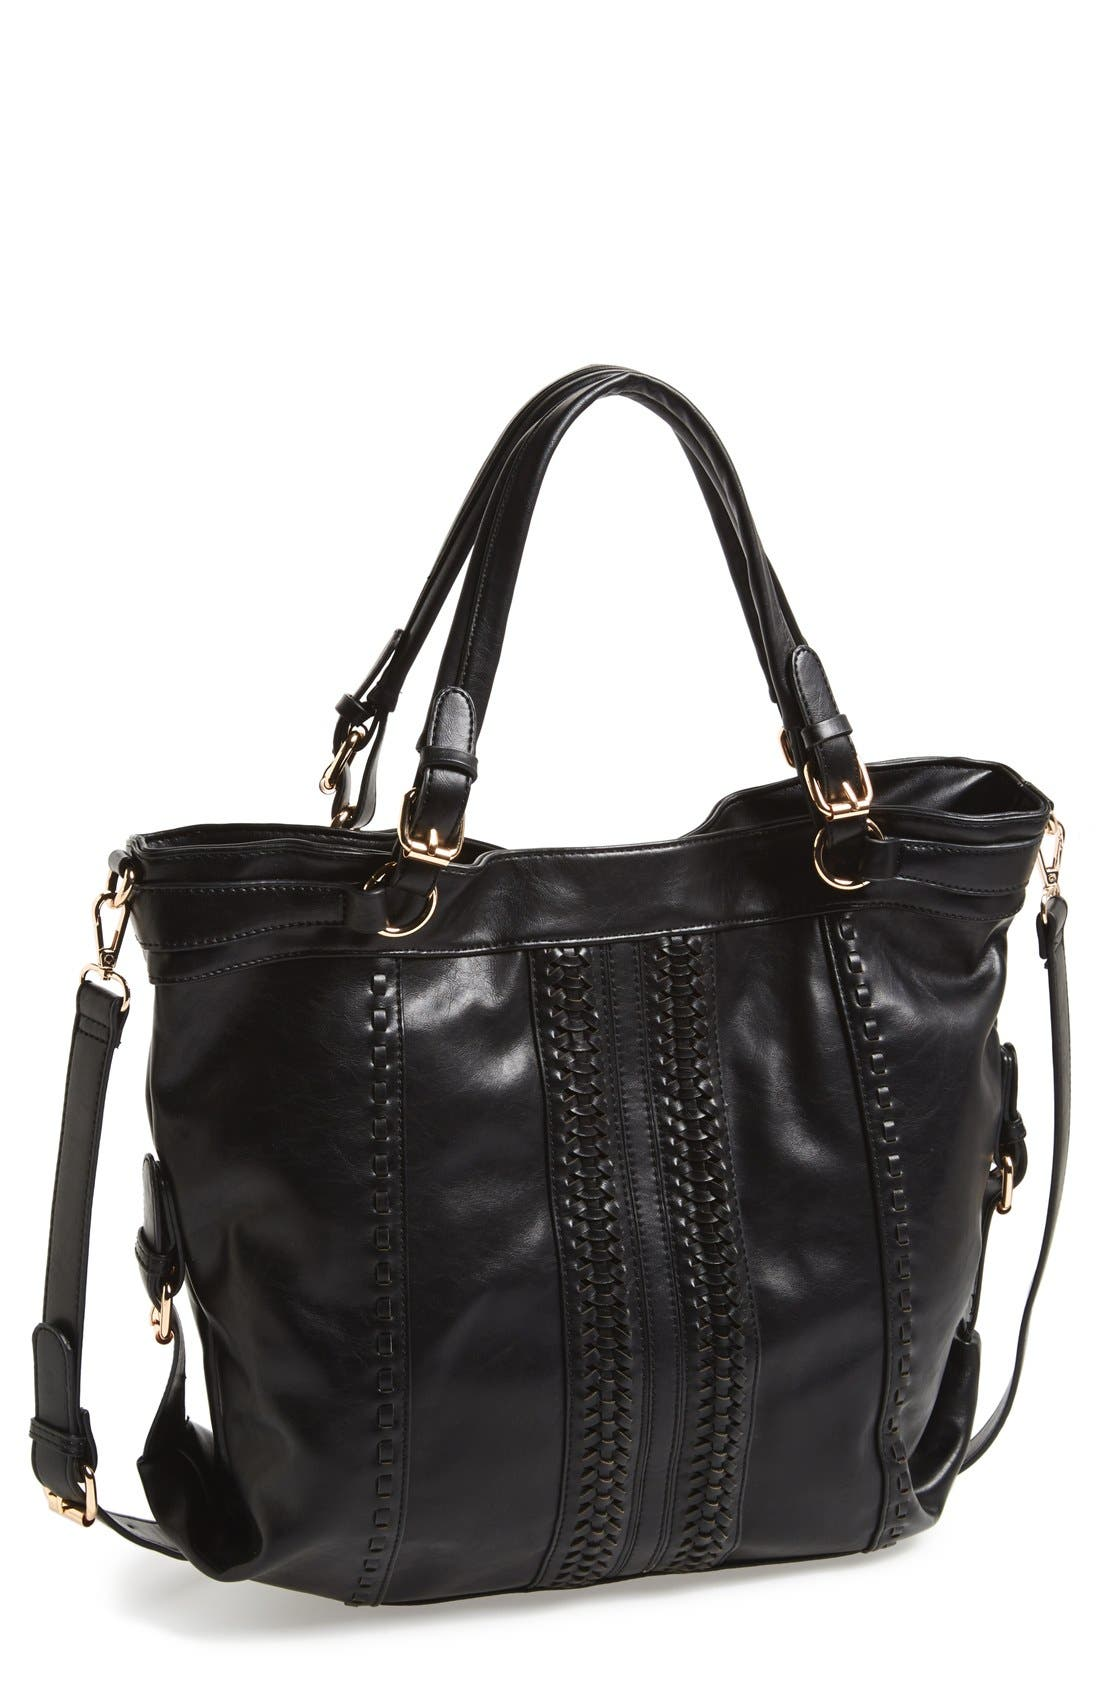 Alternate Image 1 Selected - Sole Society 'Oversize' Woven Faux Leather Shoulder Bag